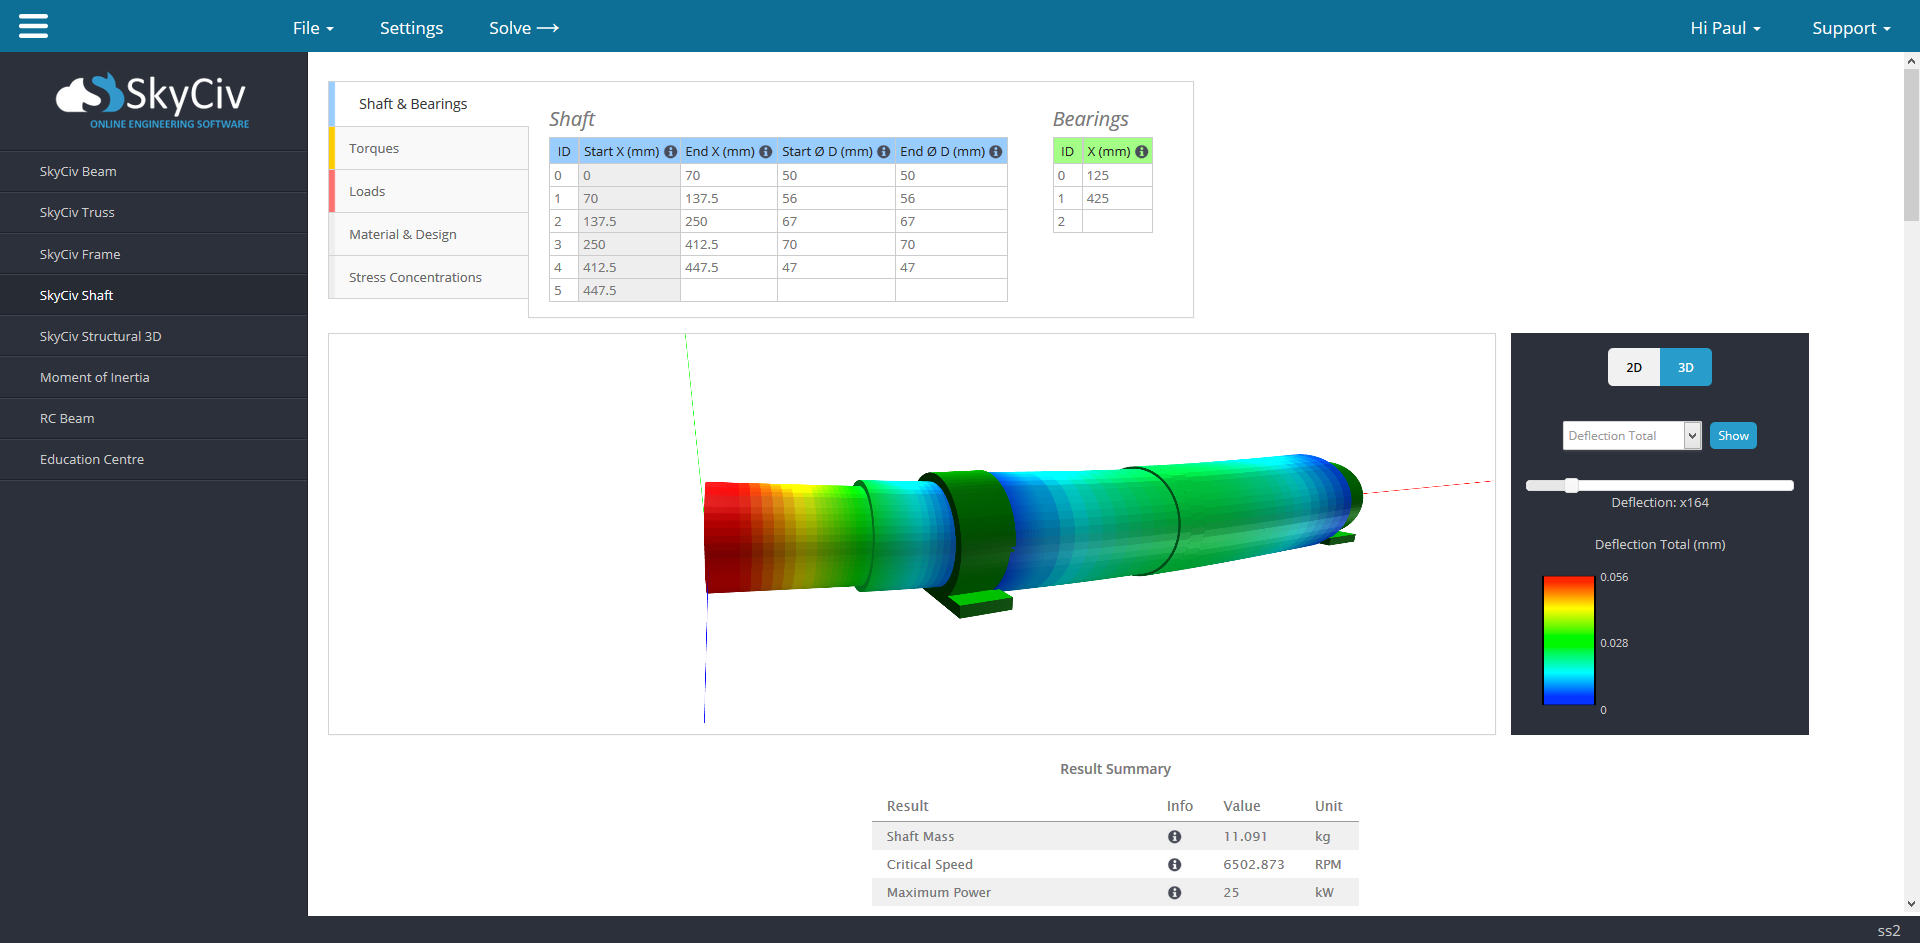 clean and easy user interface of shaft calculator, using skyciv shaft analysis software